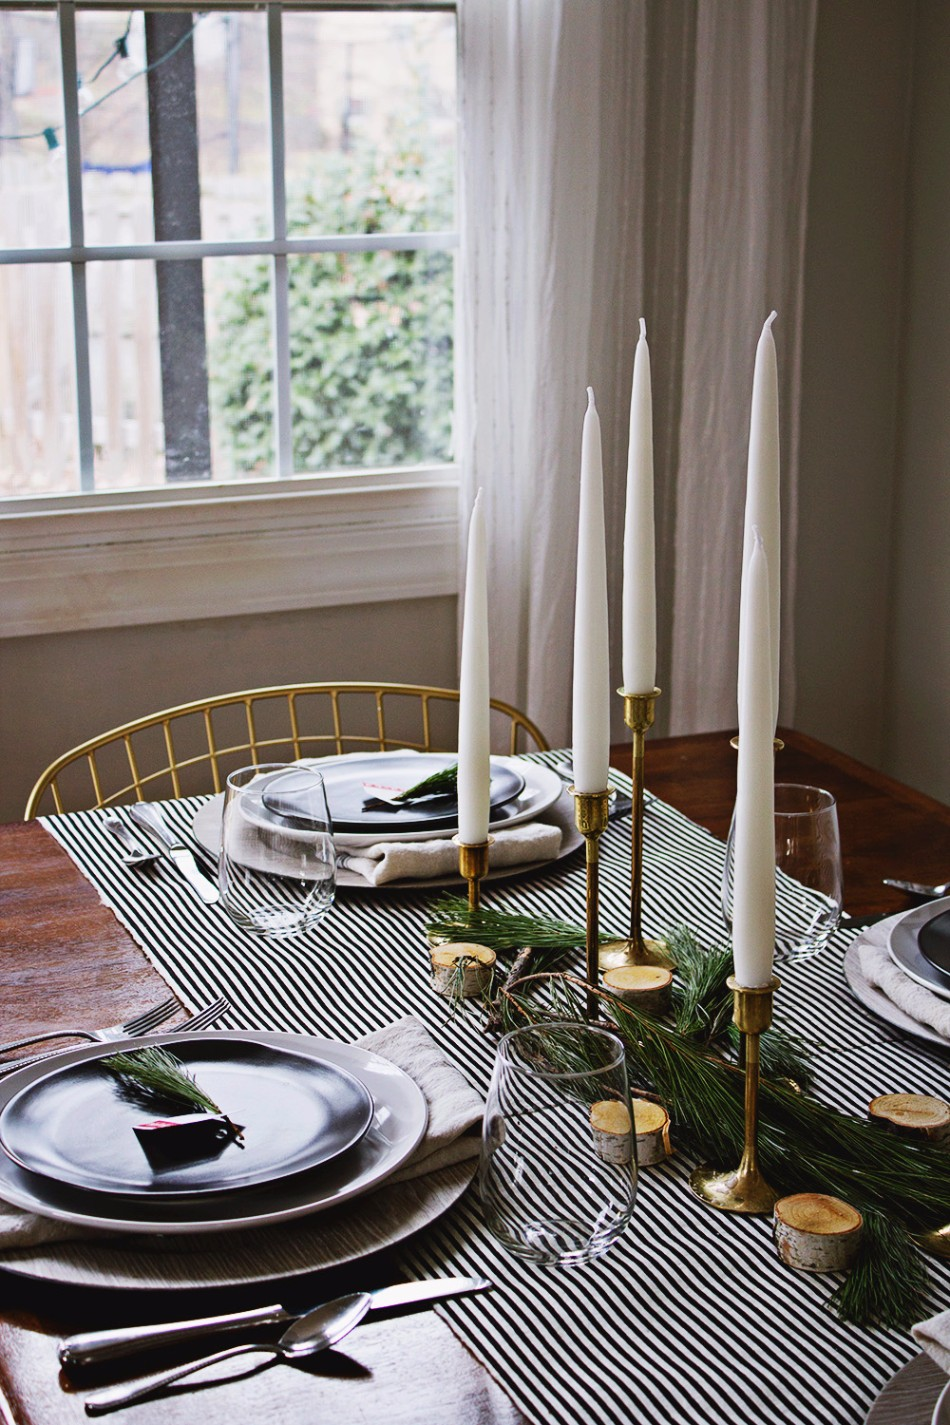 dining table decor 5 Ideas on How to Prepare The Best Dining Table Decor for Christmas 5 Ideas on How to Prepare The Best Dining Table Decor for Christmas